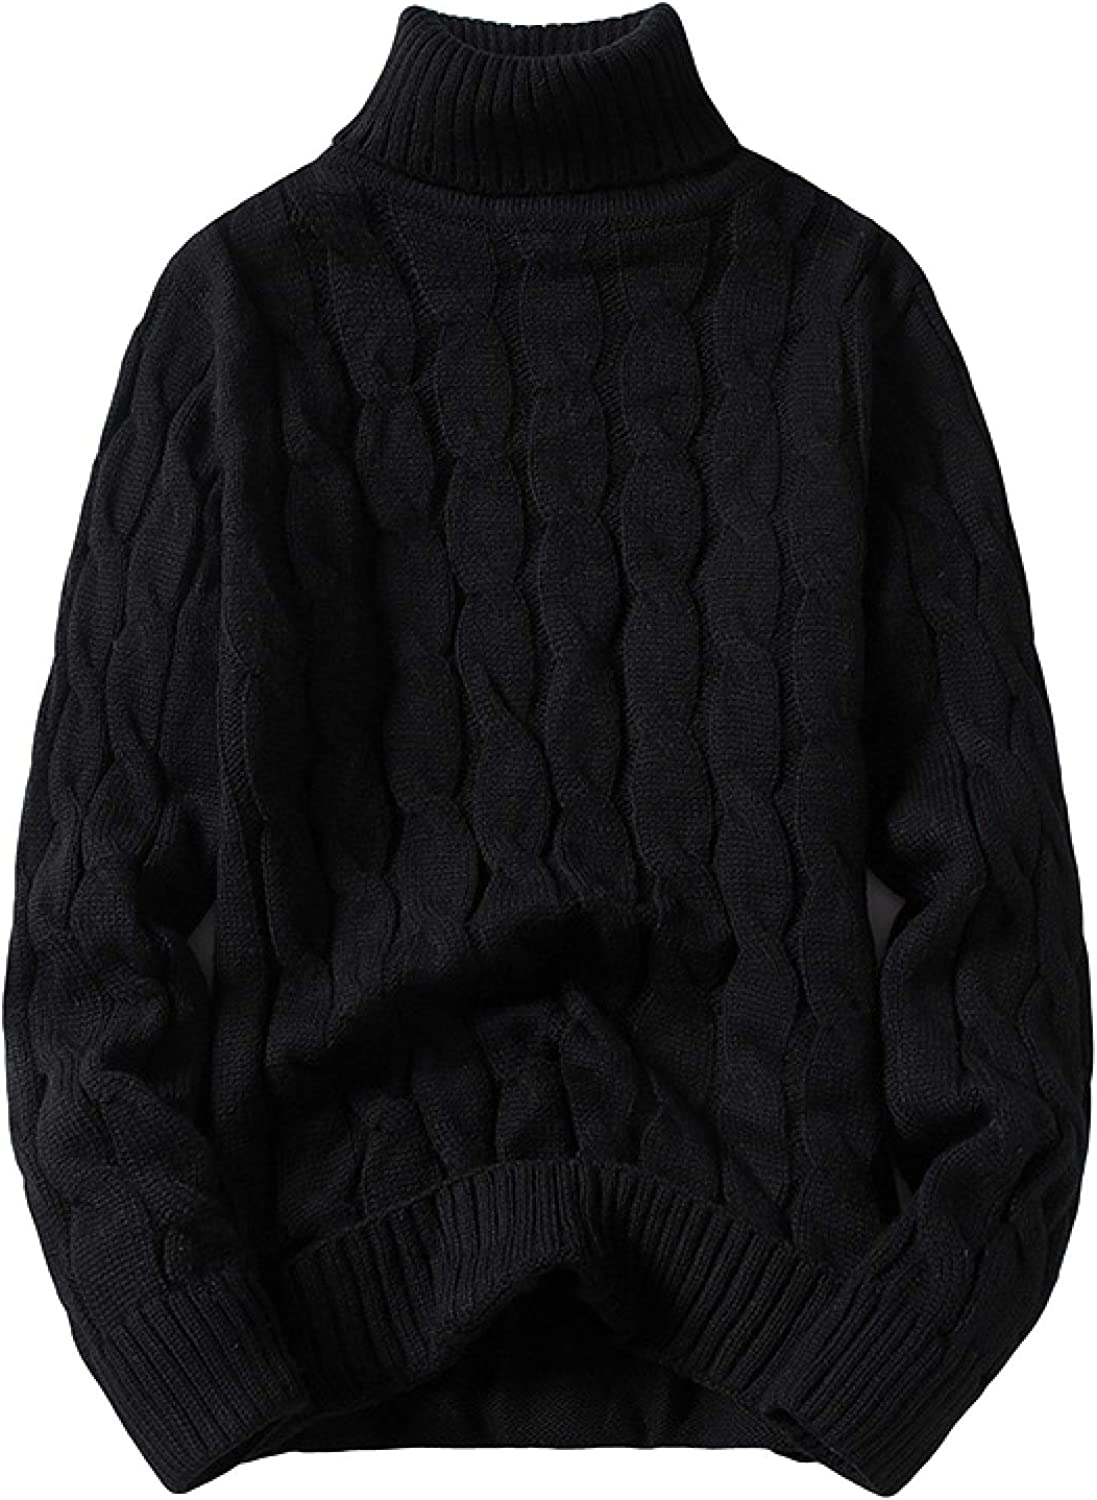 Capabes Mens Turtleneck Slim Fit Twisted Knitted Casual Pullover Jumpers Winter Solid